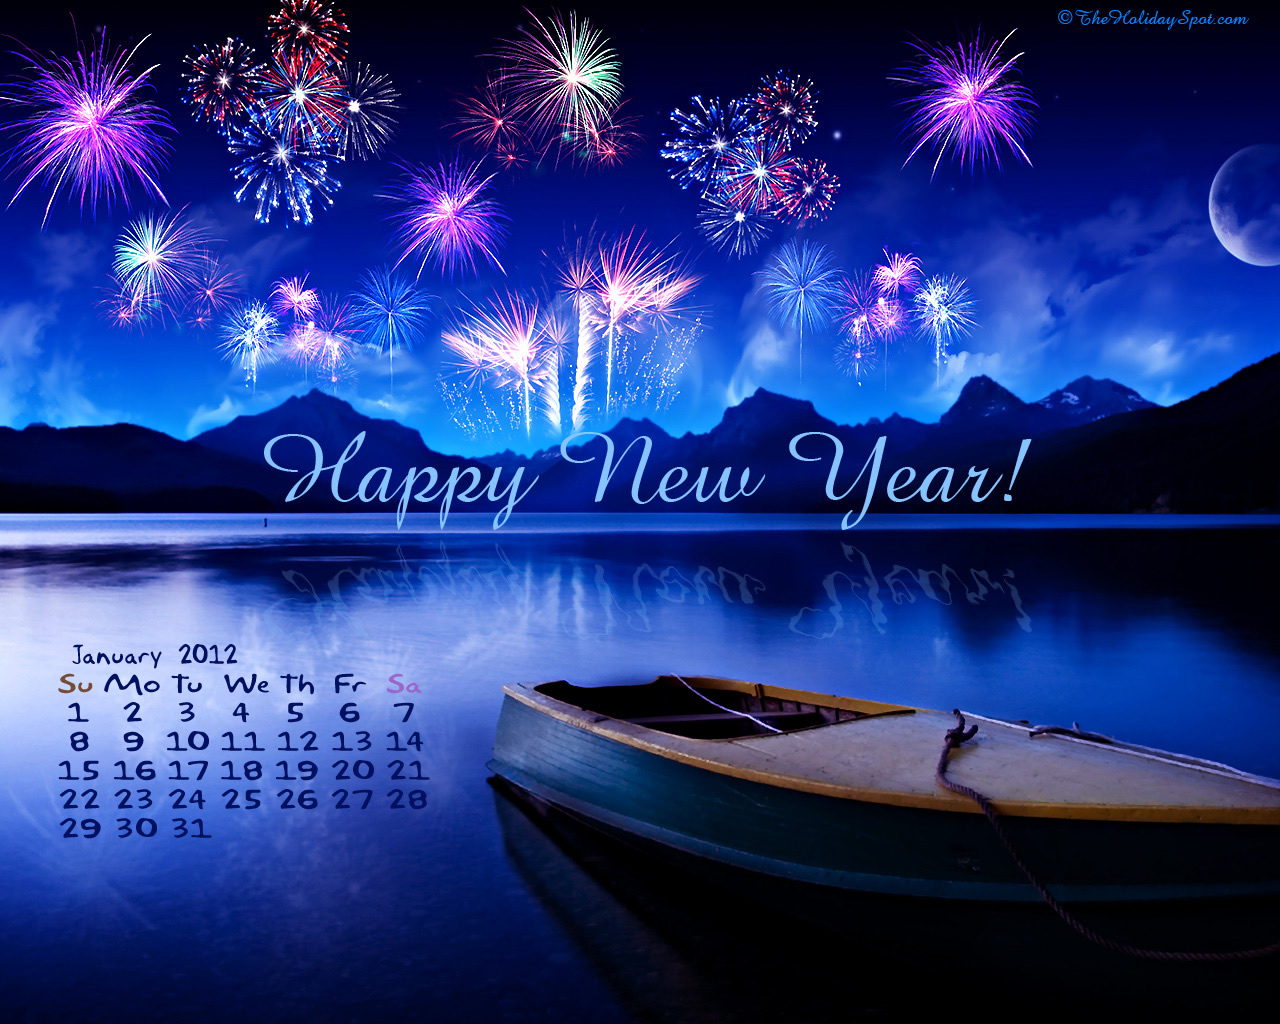 January 2nd 2012 Desktop Wallpaper Calendars January 2012 1280x1024